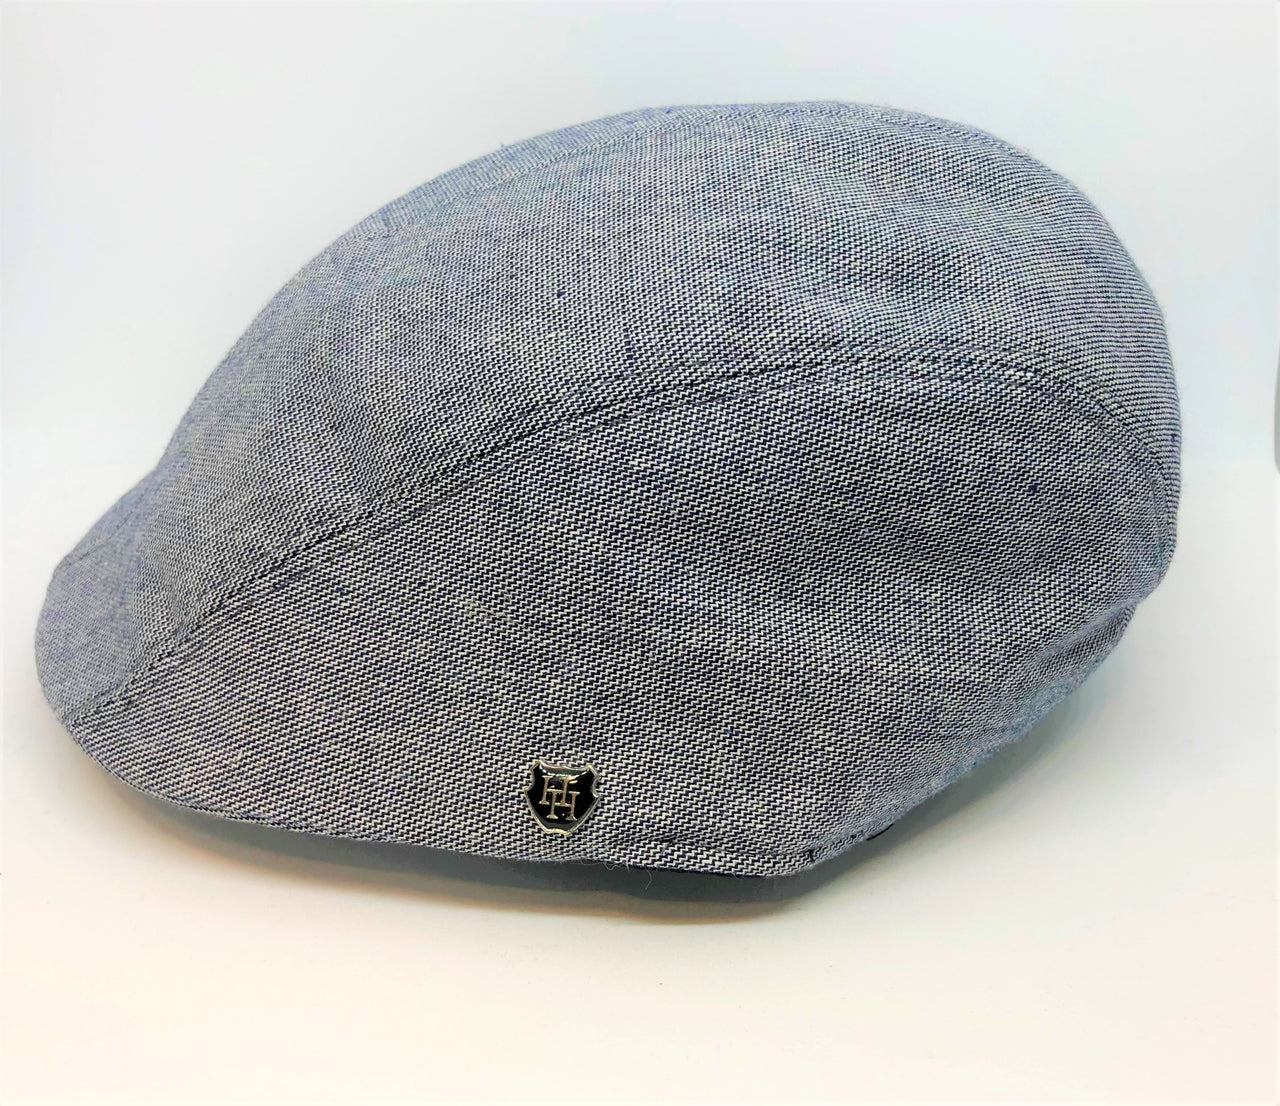 Hills Los Angeles Duckbill Cap